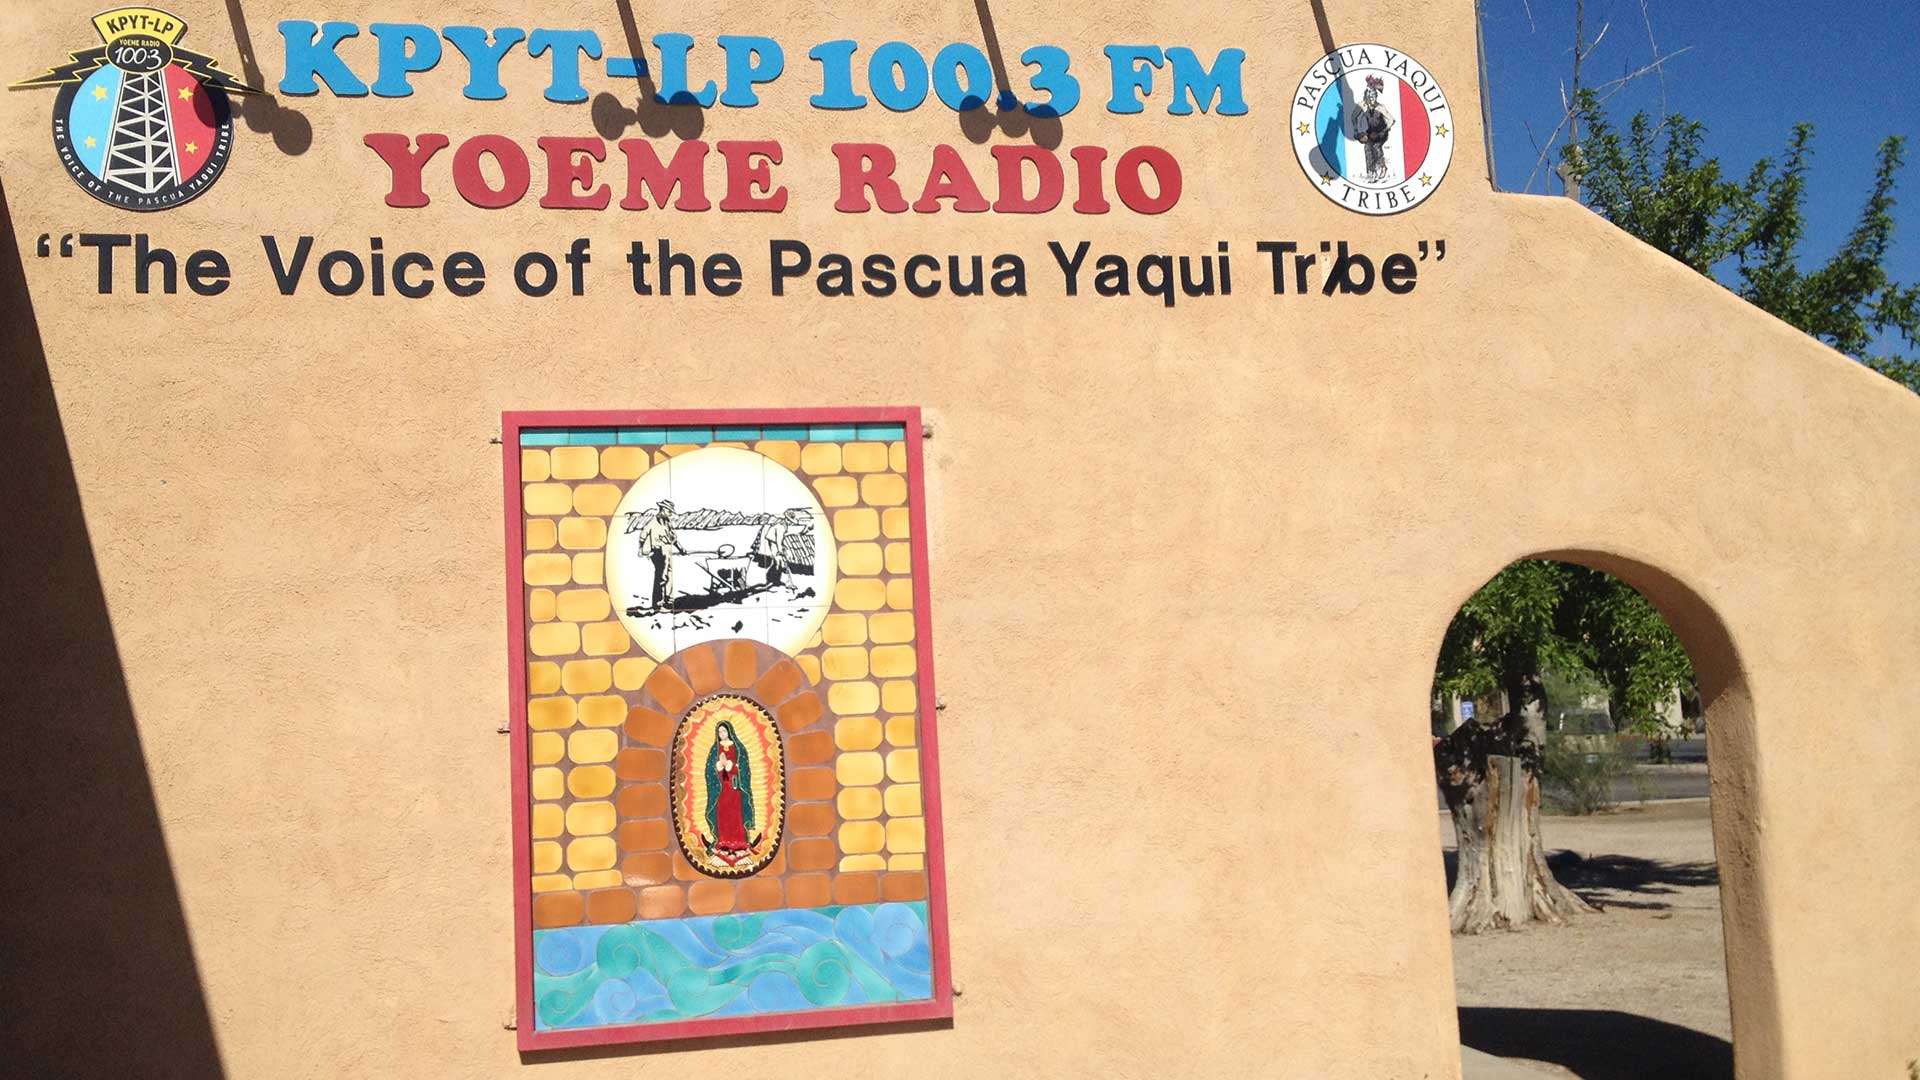 The radio station in the Pascua Yaqui Tribe's reservation.